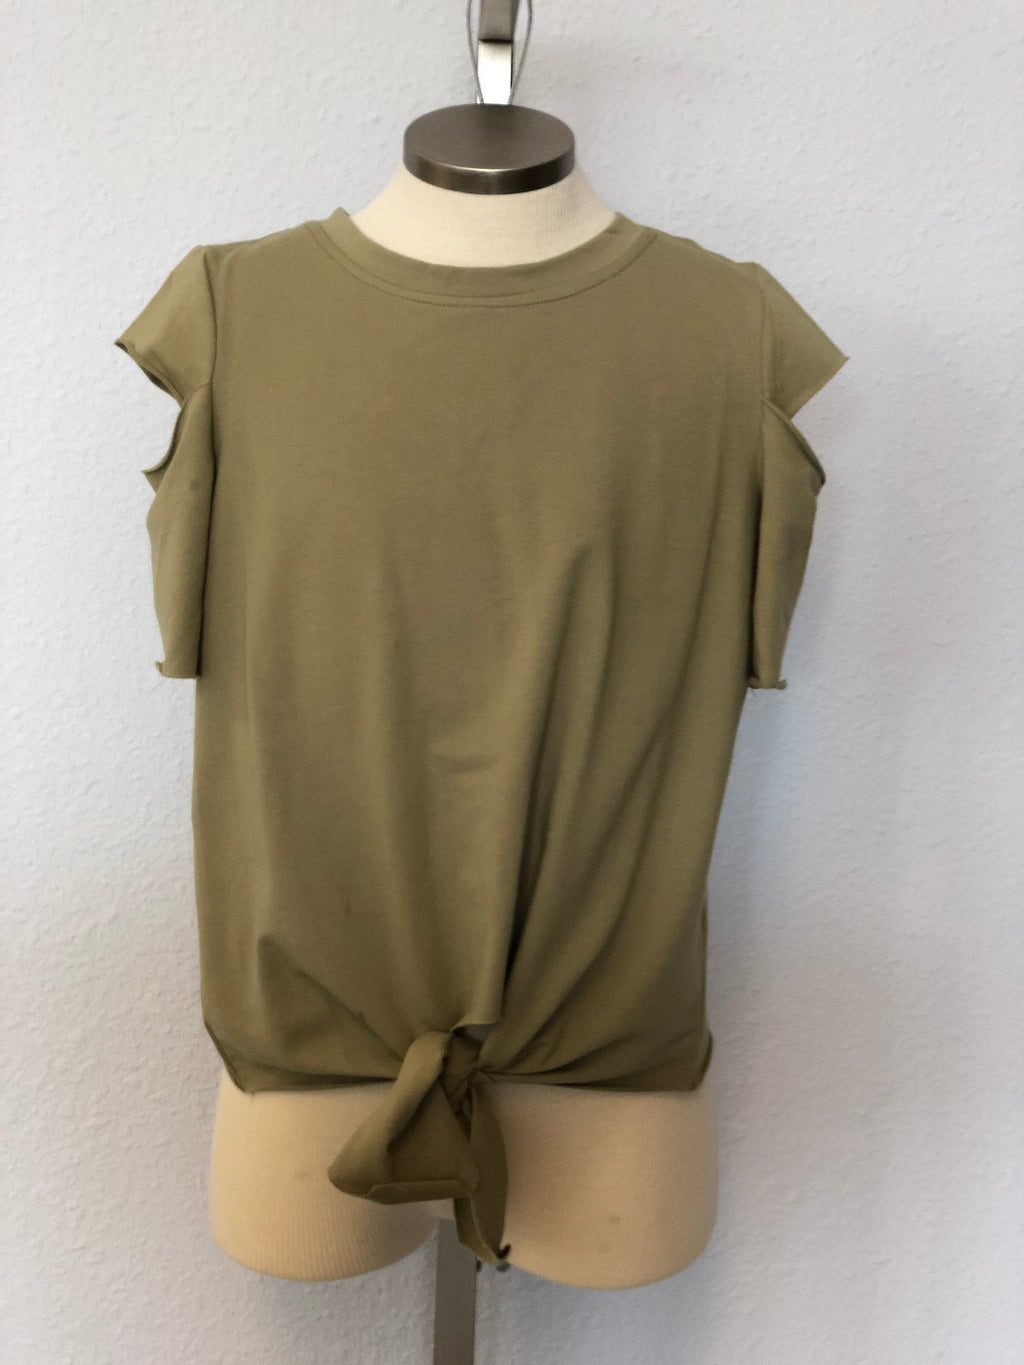 K CUTOUT TERRY TOP